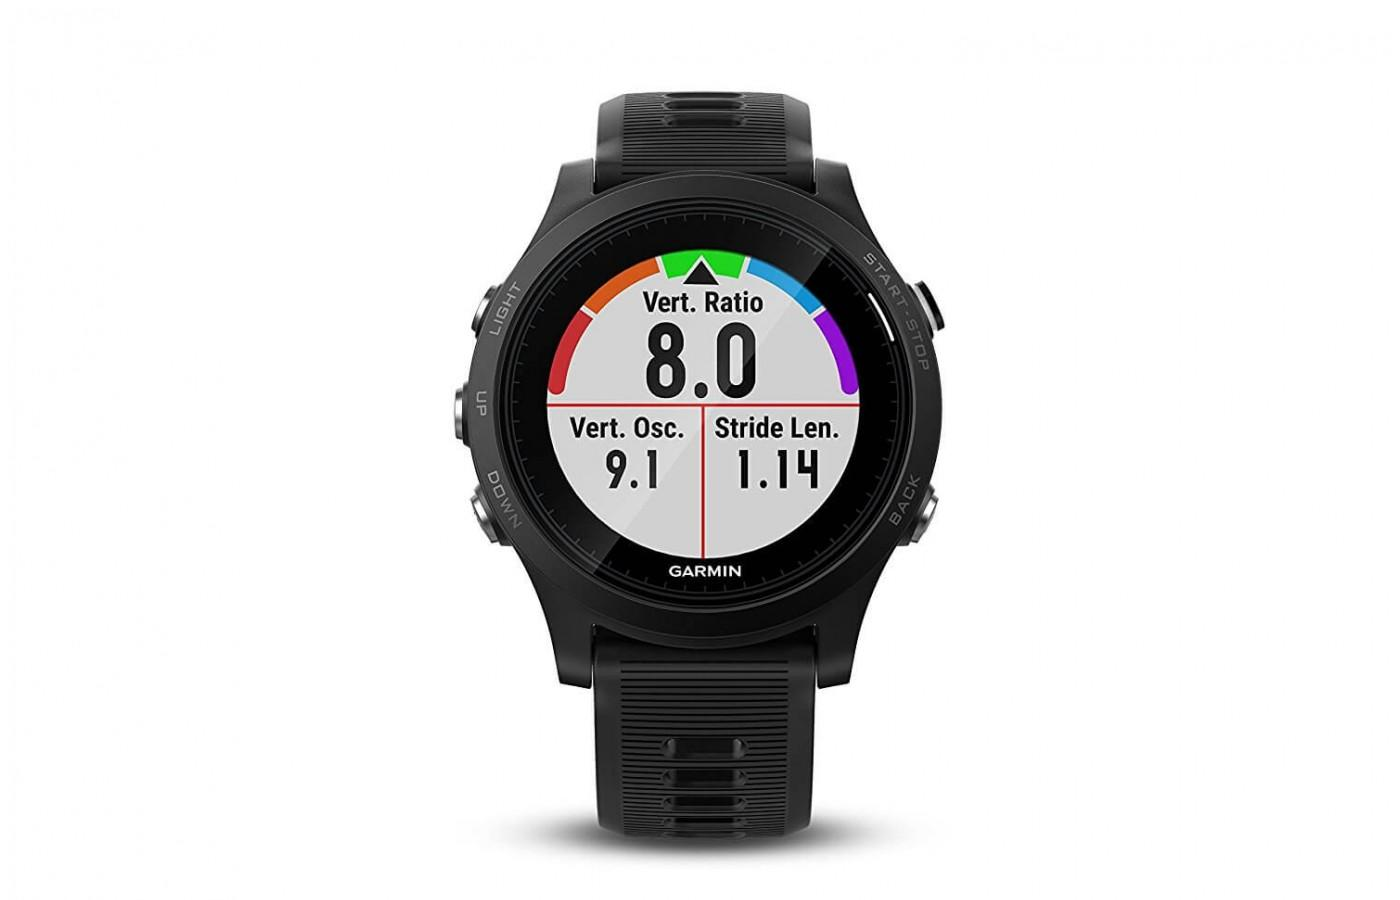 Garmin Forerunner 935 showcases a sunlight-visible color screen